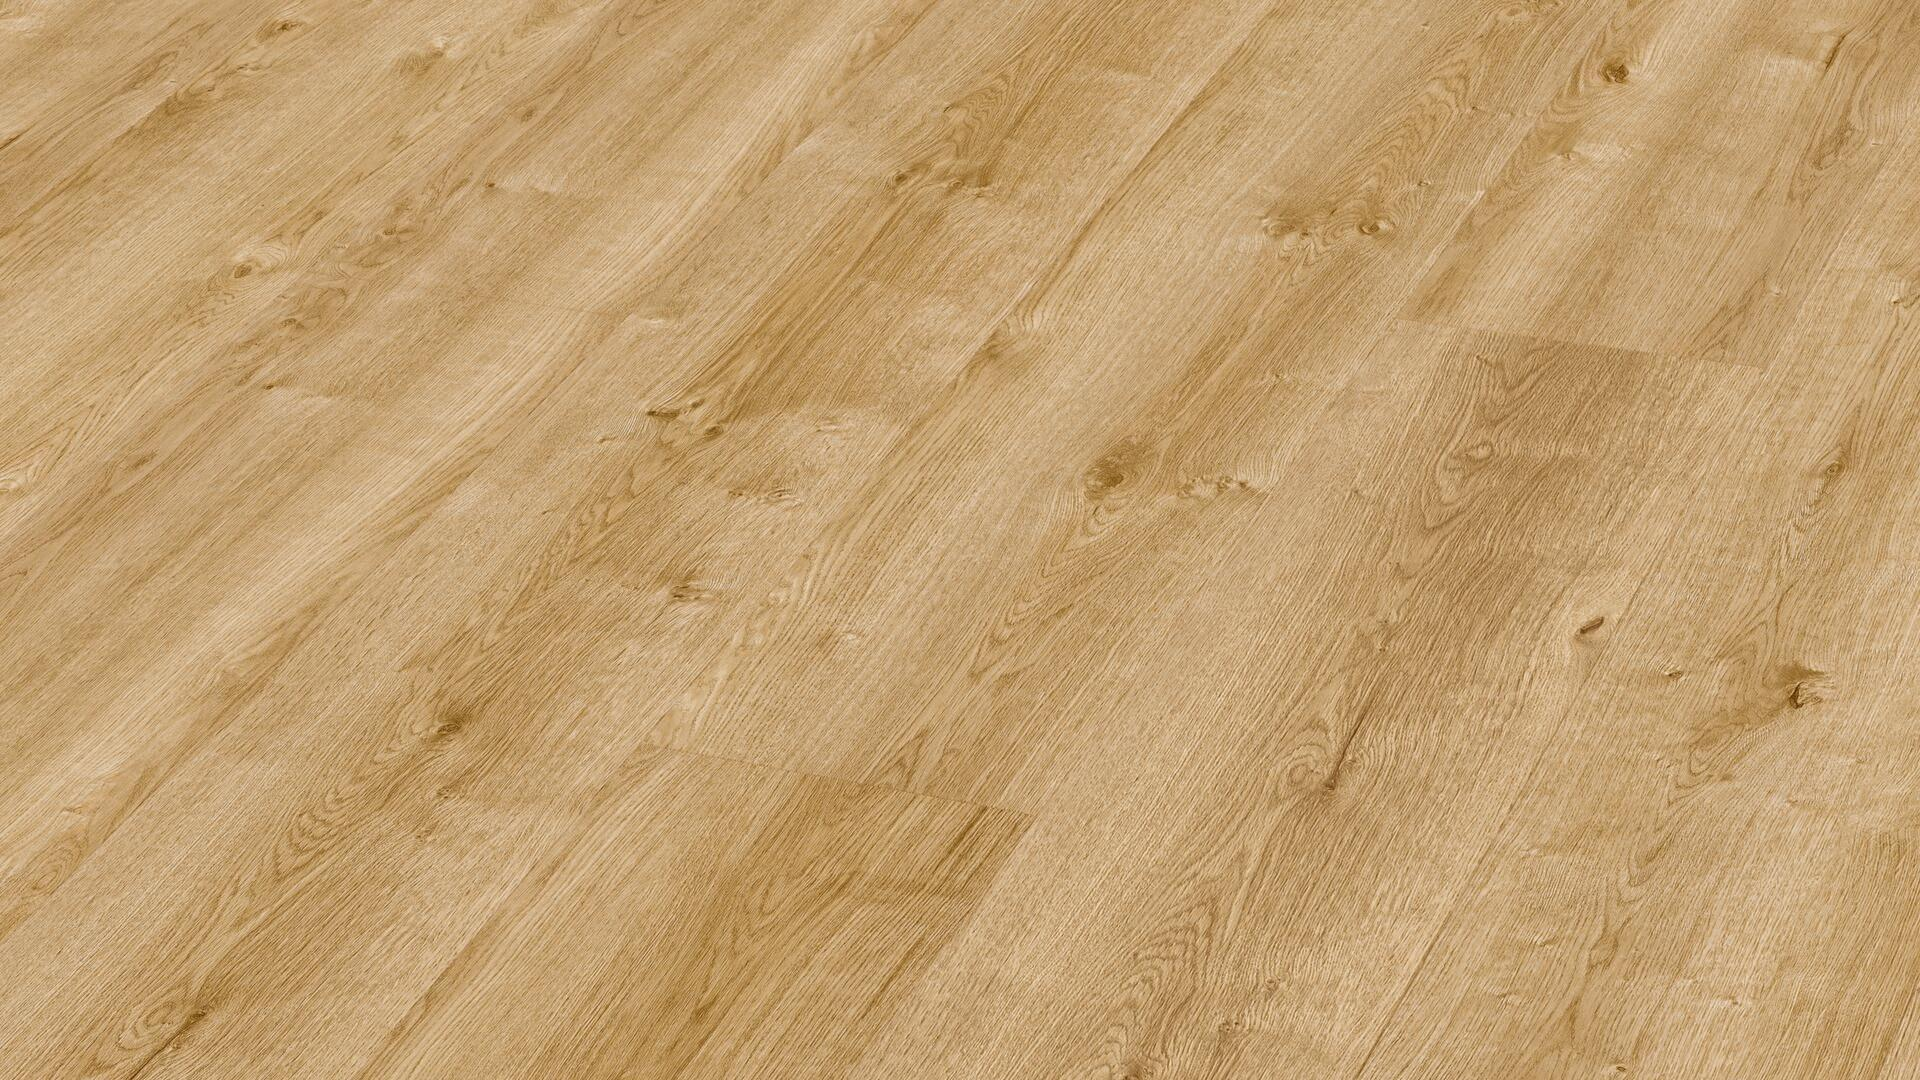 Design flooring MeisterDesign. comfort DL 600 S Natural farmer's oak 6832